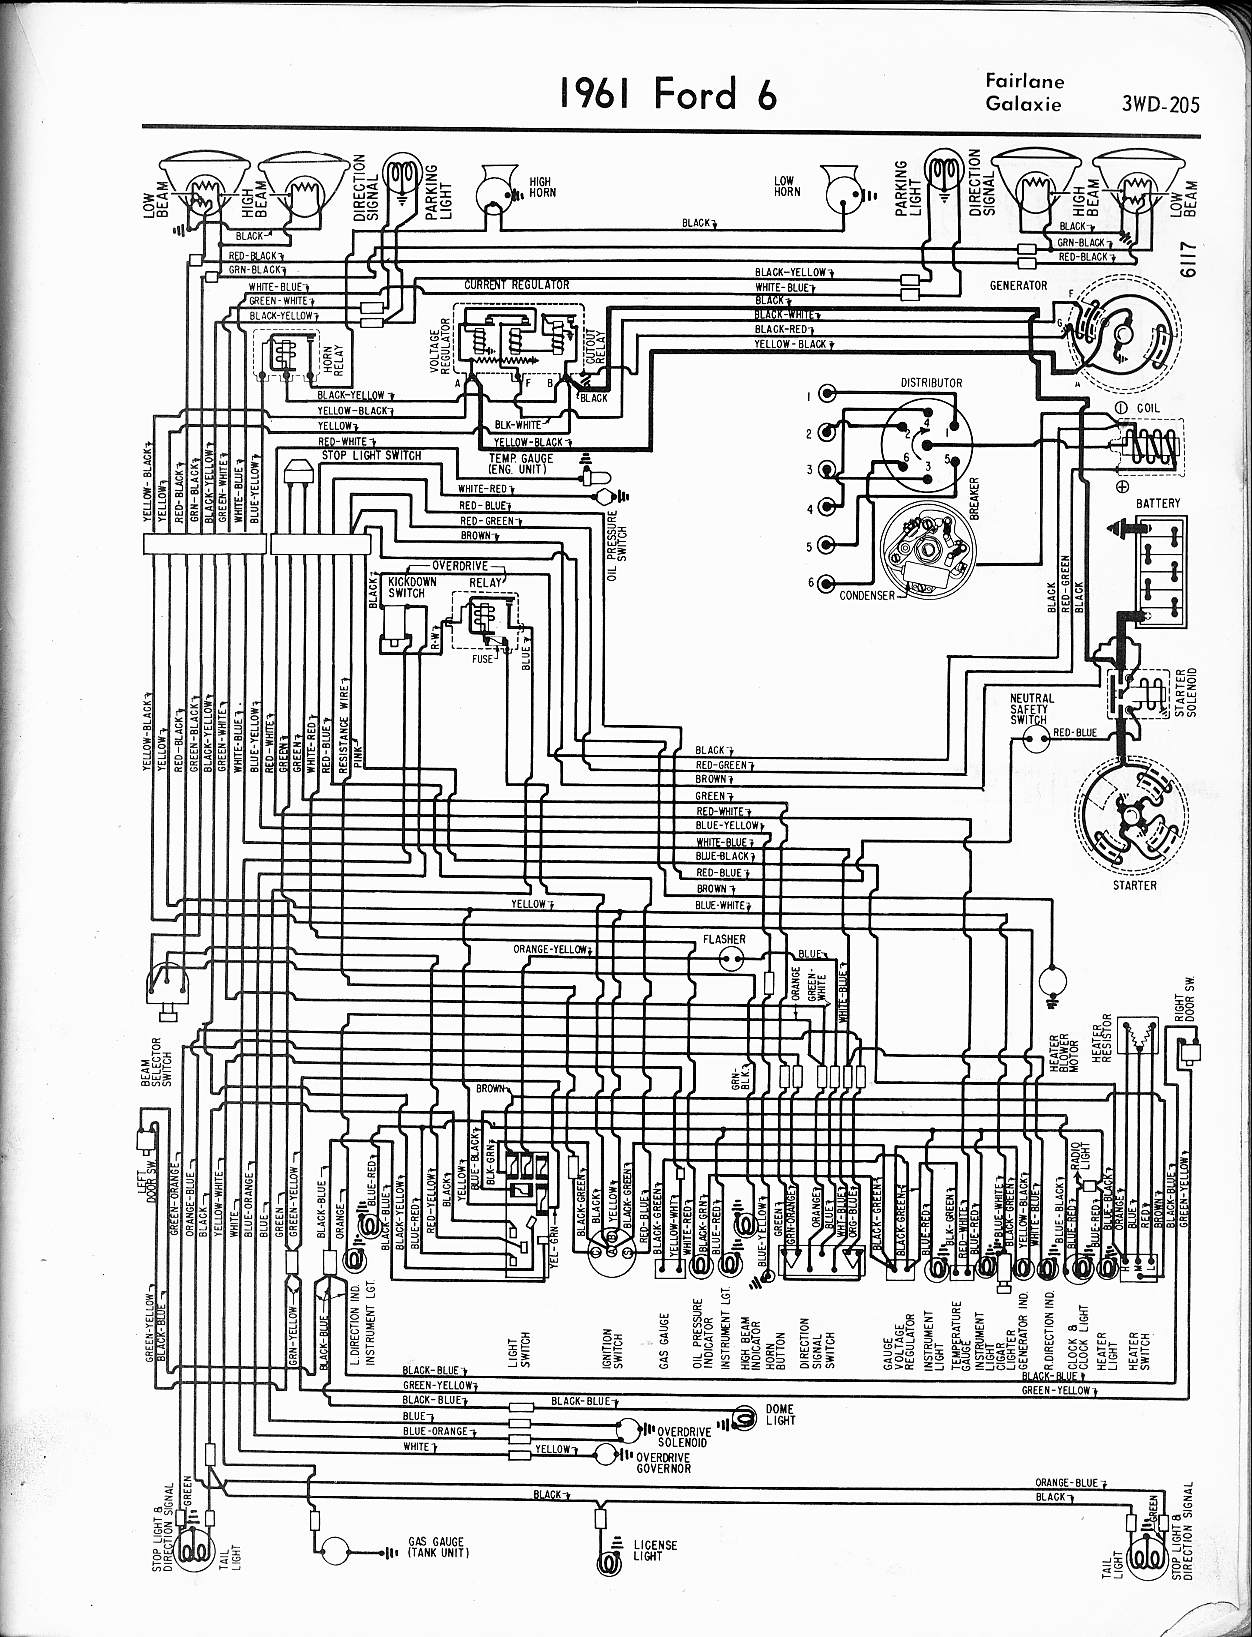 MWire5765 205 1965 ford falcon wiring diagram 1965 ford falcon dash wiring 1964 Ford Fairlane at crackthecode.co